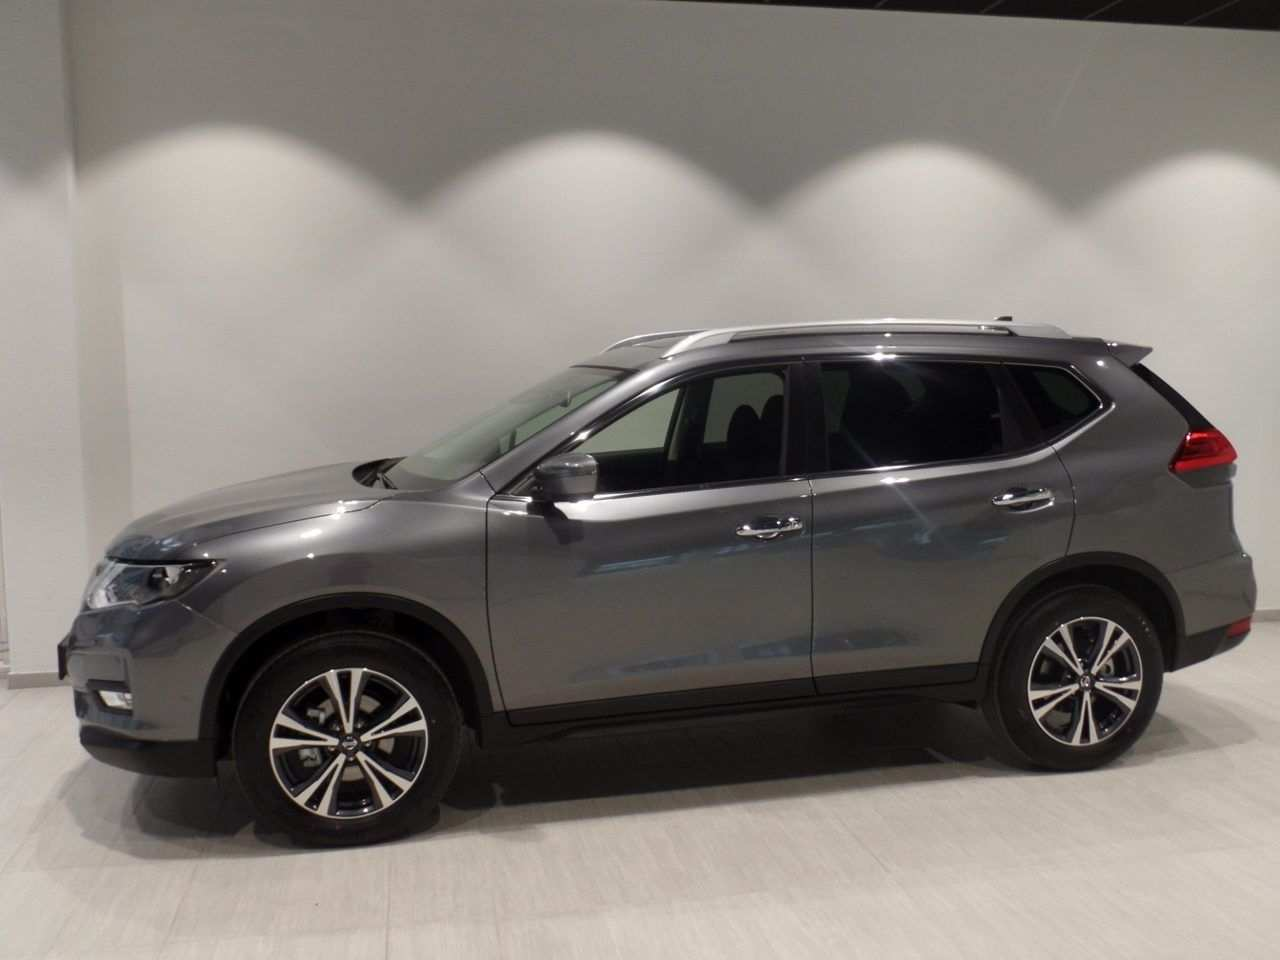 58 A Nissan X Trail 2019 Review Pictures